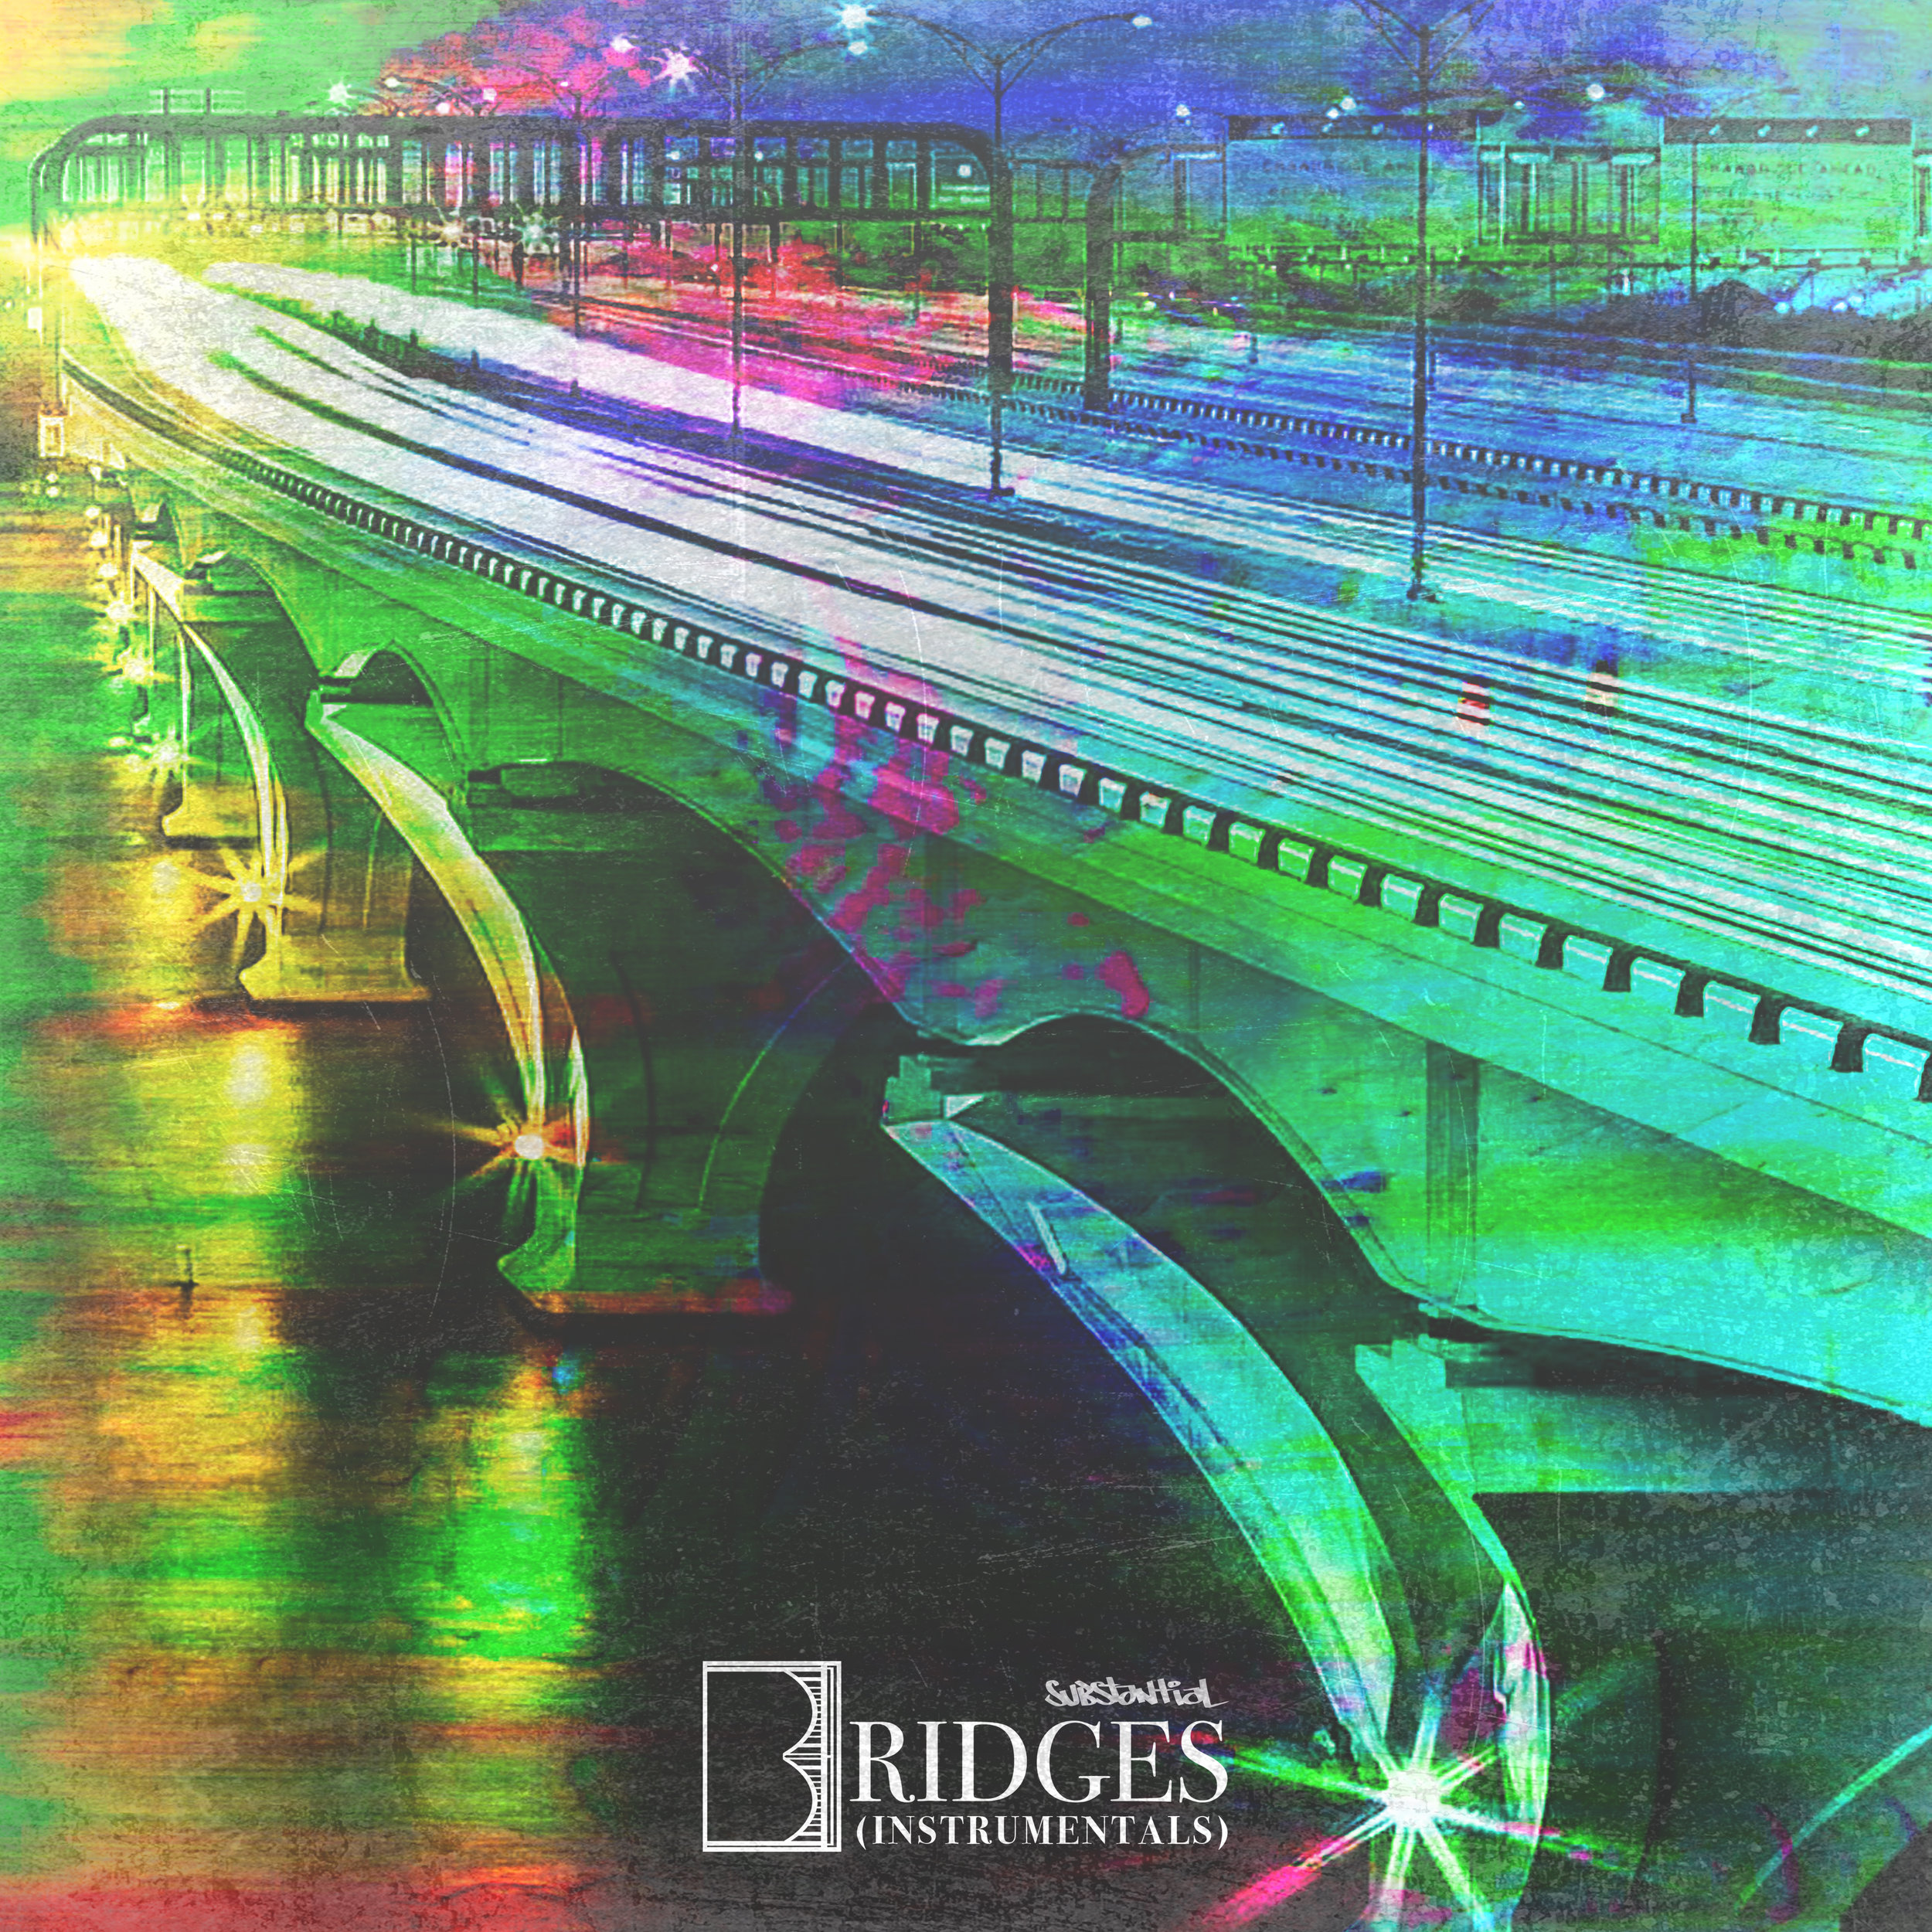 Bridges-Instrumental-Cover.jpg